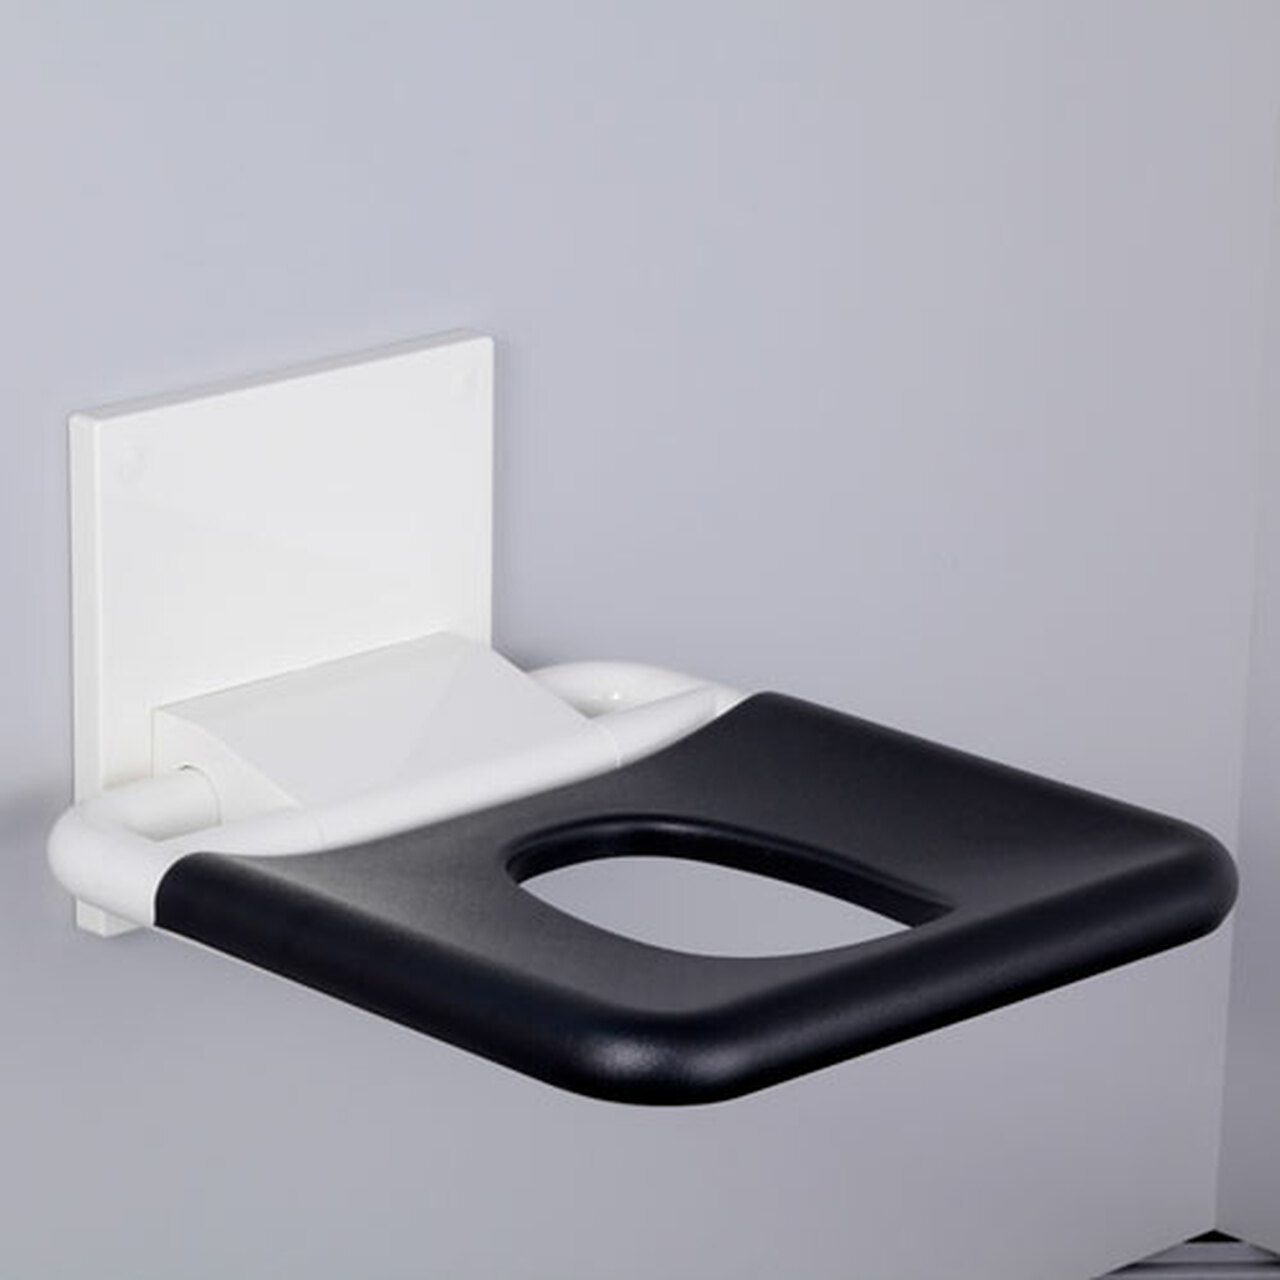 Phenomenal Pba Nylon Wall Mounted Fold Up Shower Seat With Elliptical Hole Ocoug Best Dining Table And Chair Ideas Images Ocougorg